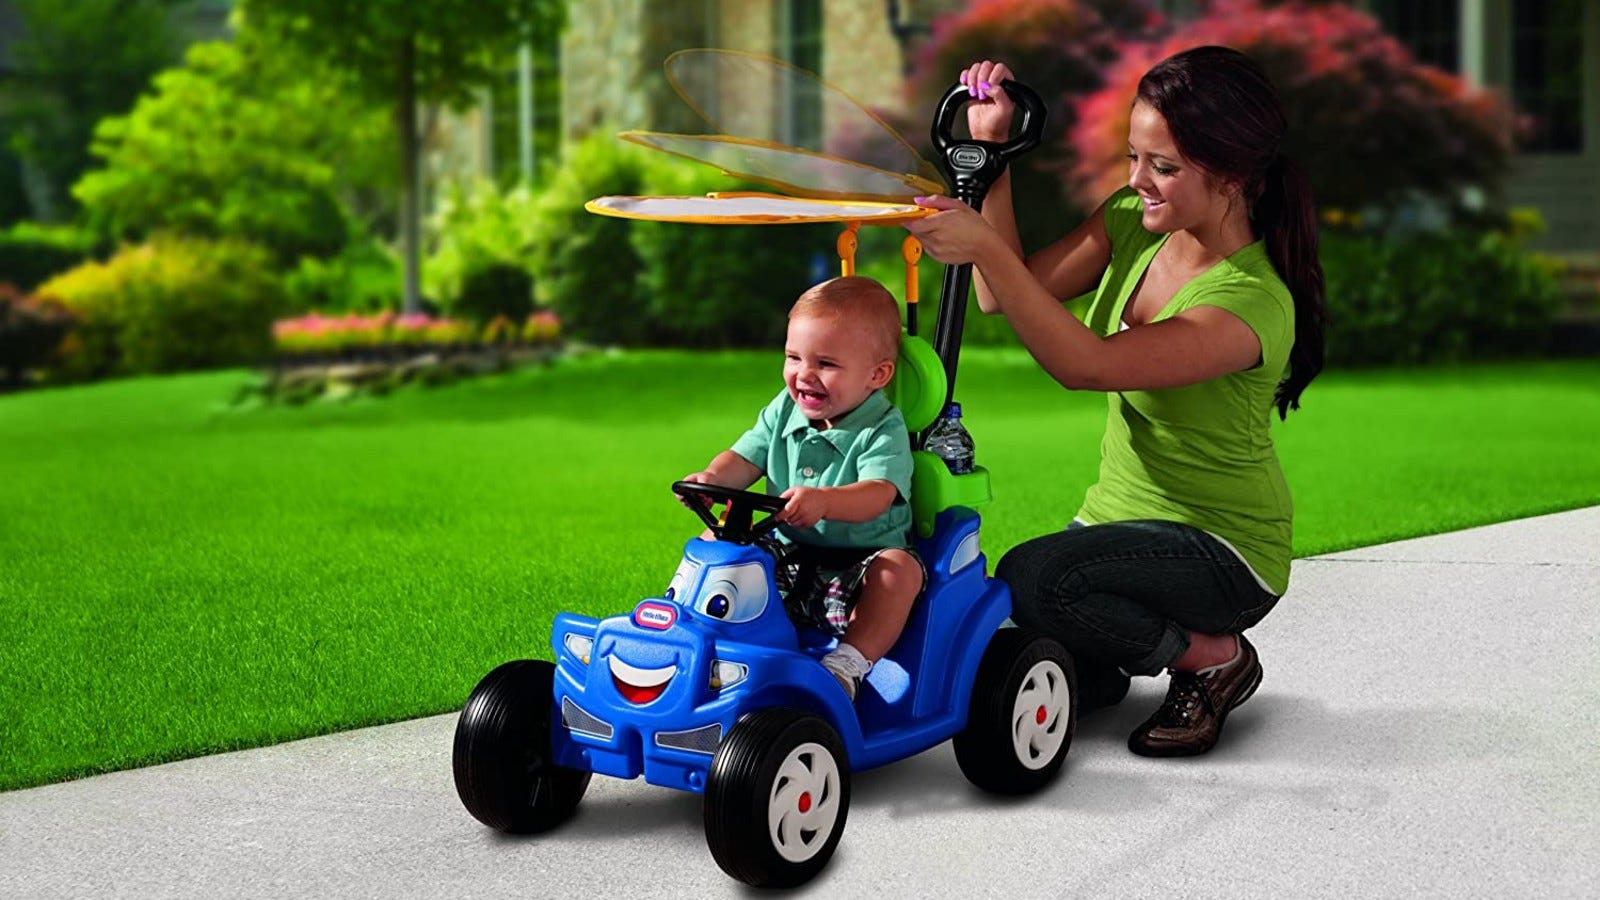 A mom pushing her son in a blue push car with a little face on the front and a canopy over the baby for shade.